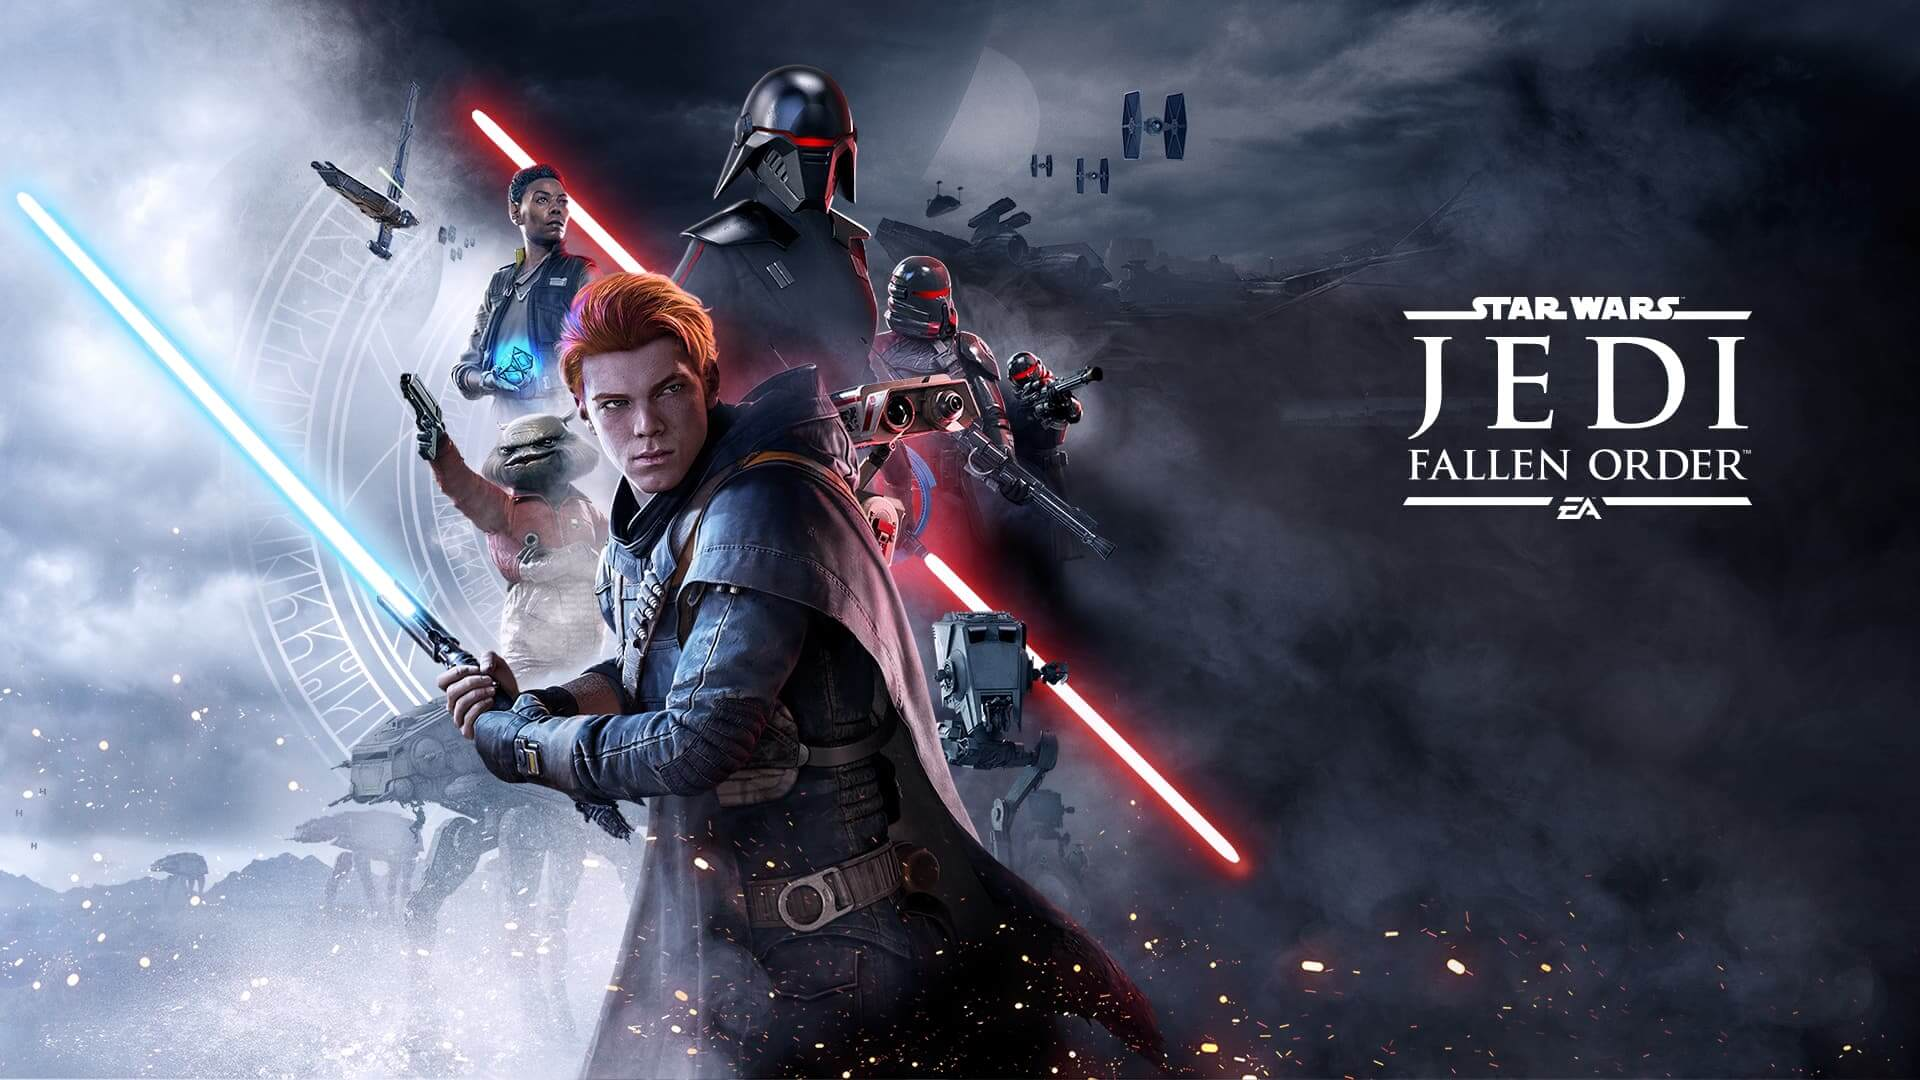 Star Wars Jedi: Fallen Order, finalmente disponibile!